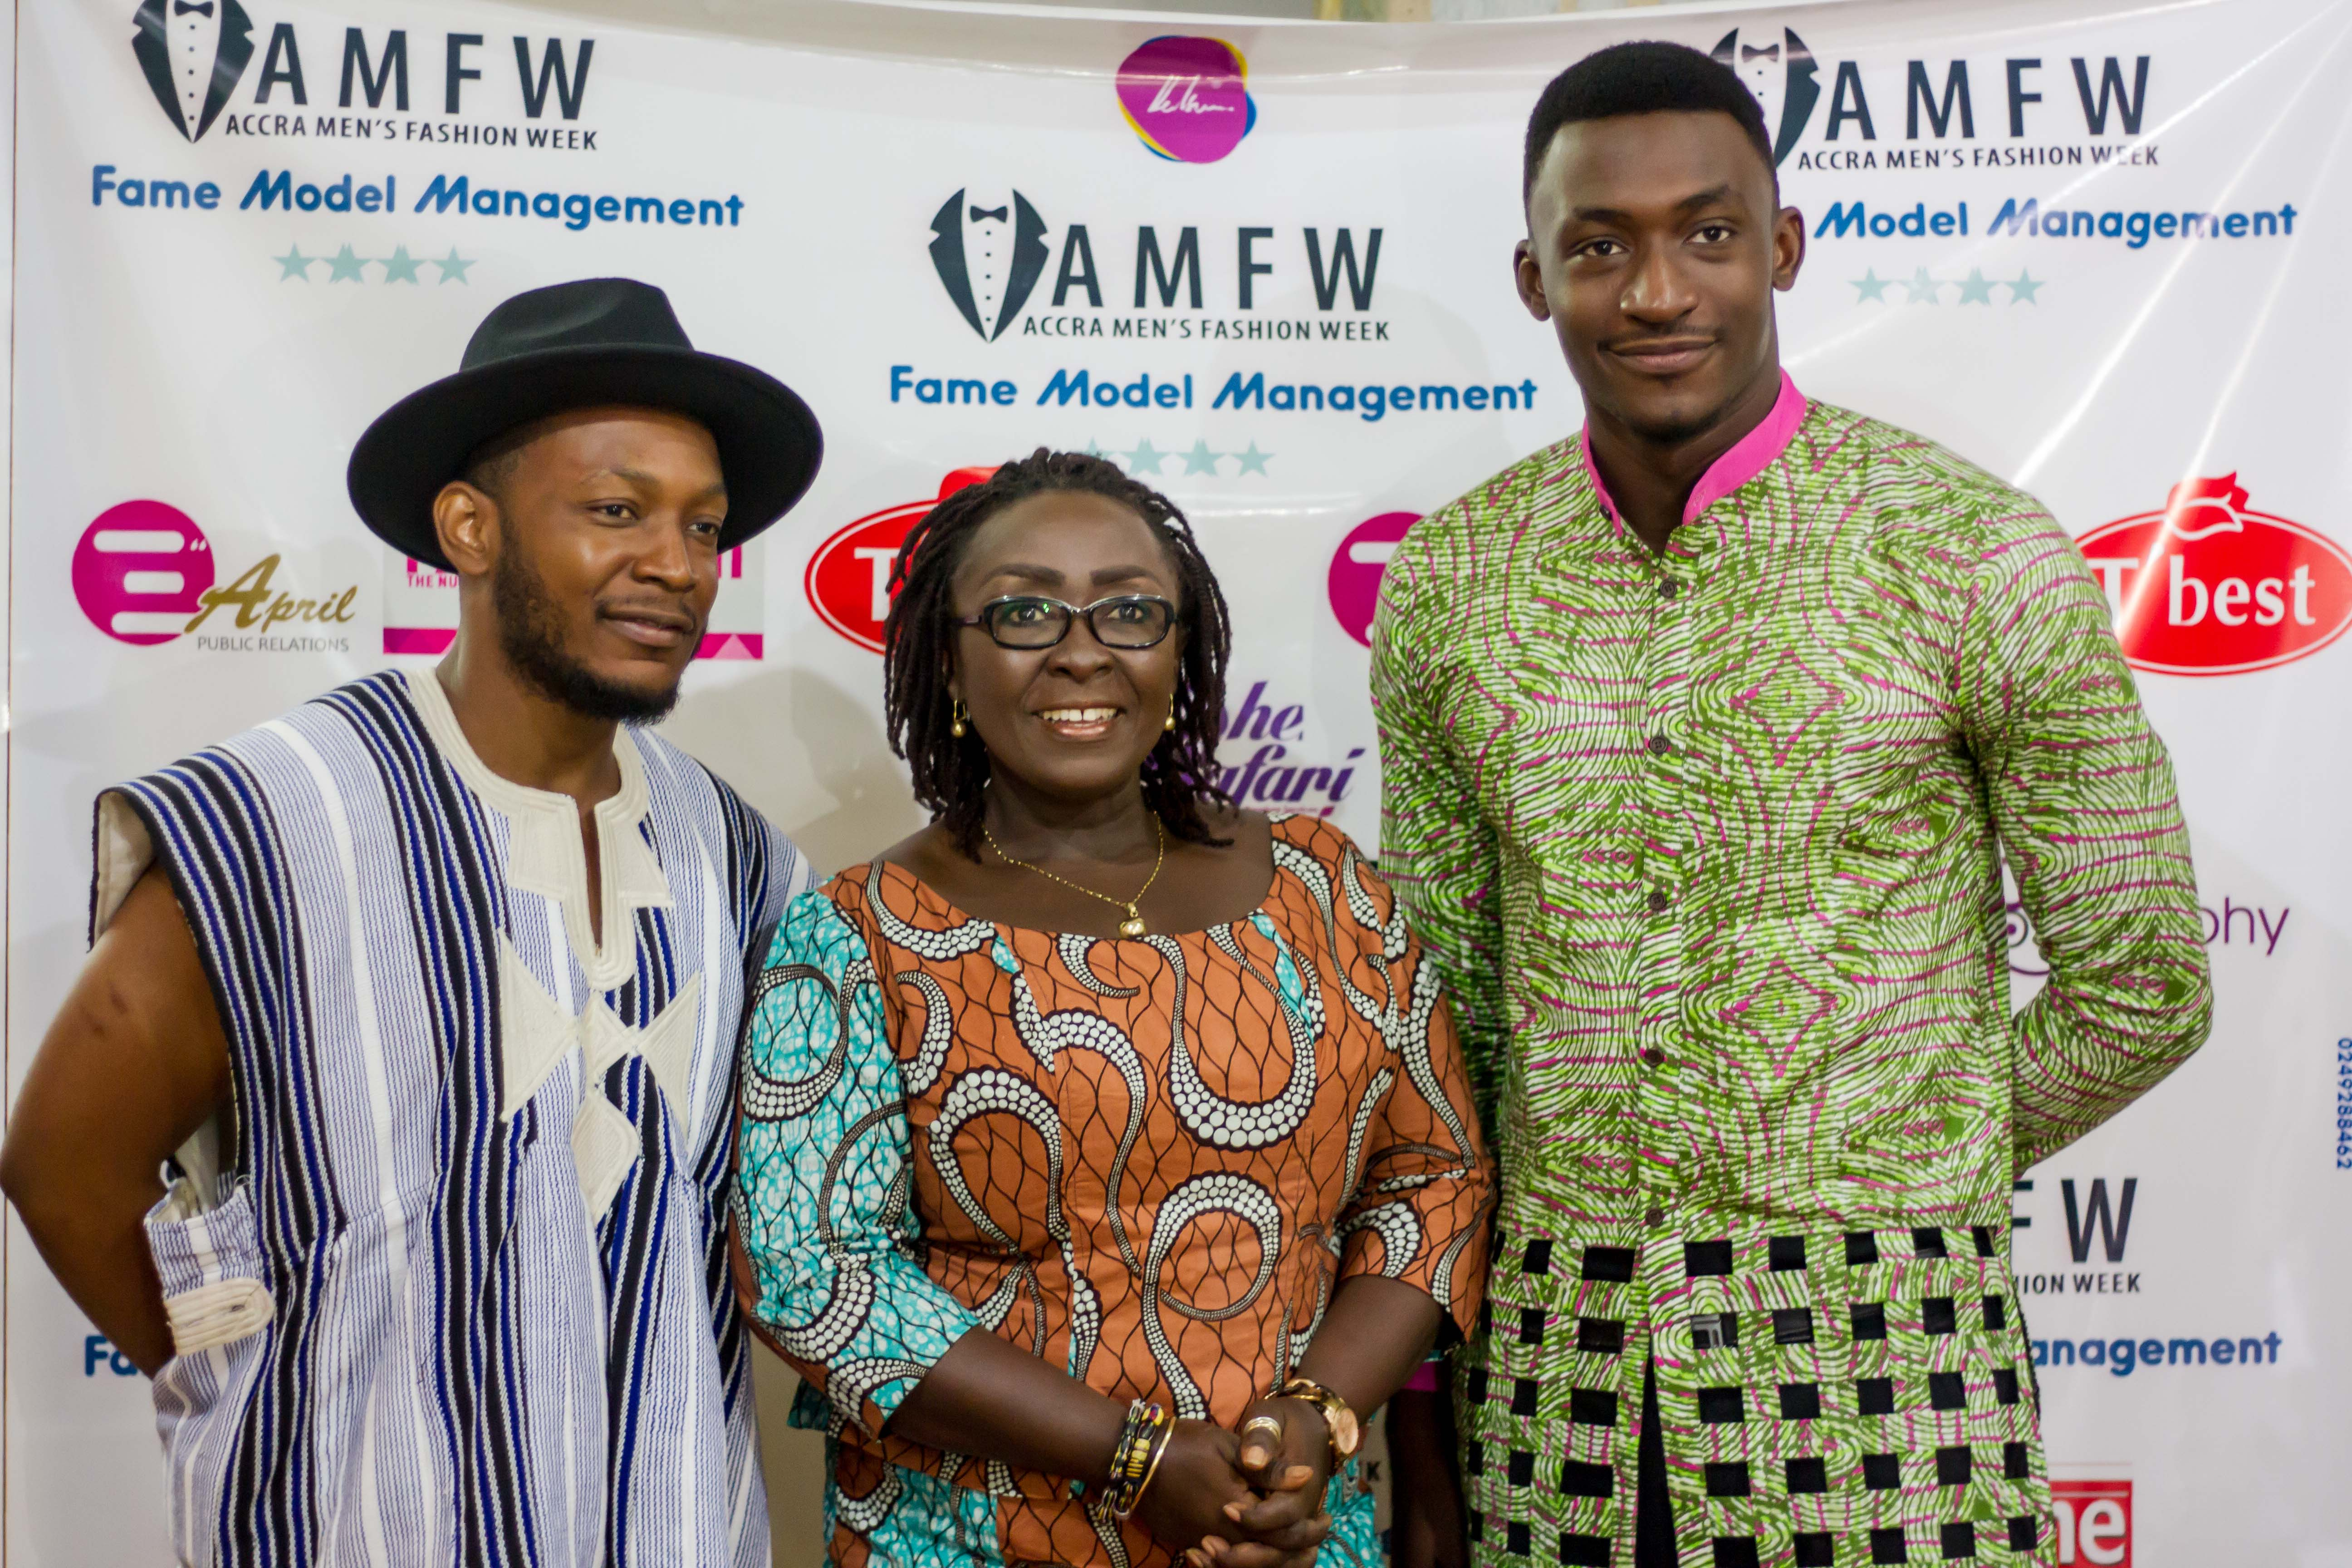 Accra Men's Fashion Launched. John Dumelo & More Named As Brand Ambassadors